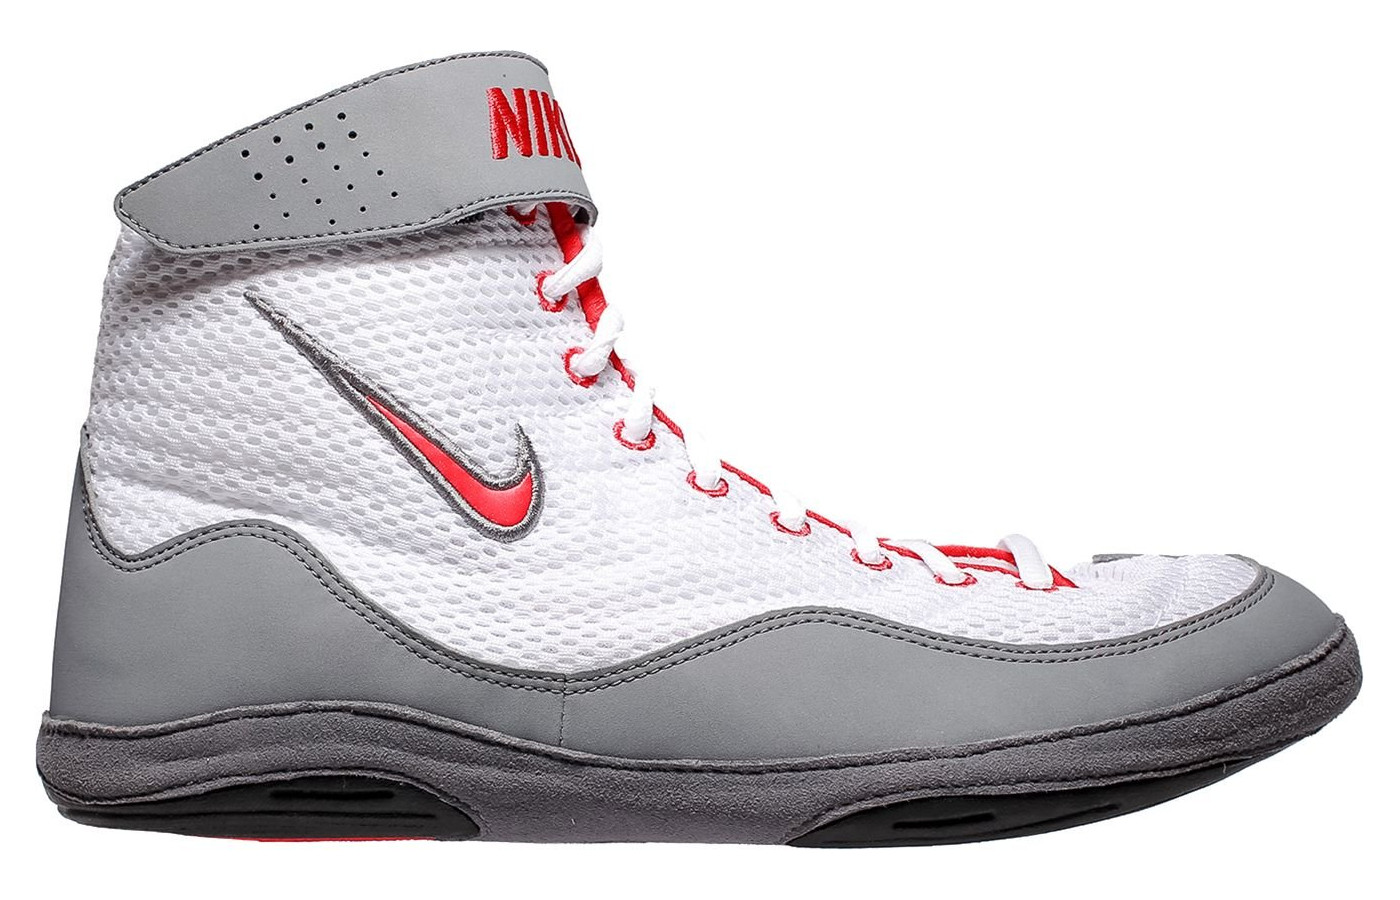 Nike Inflict 3 Gray and white